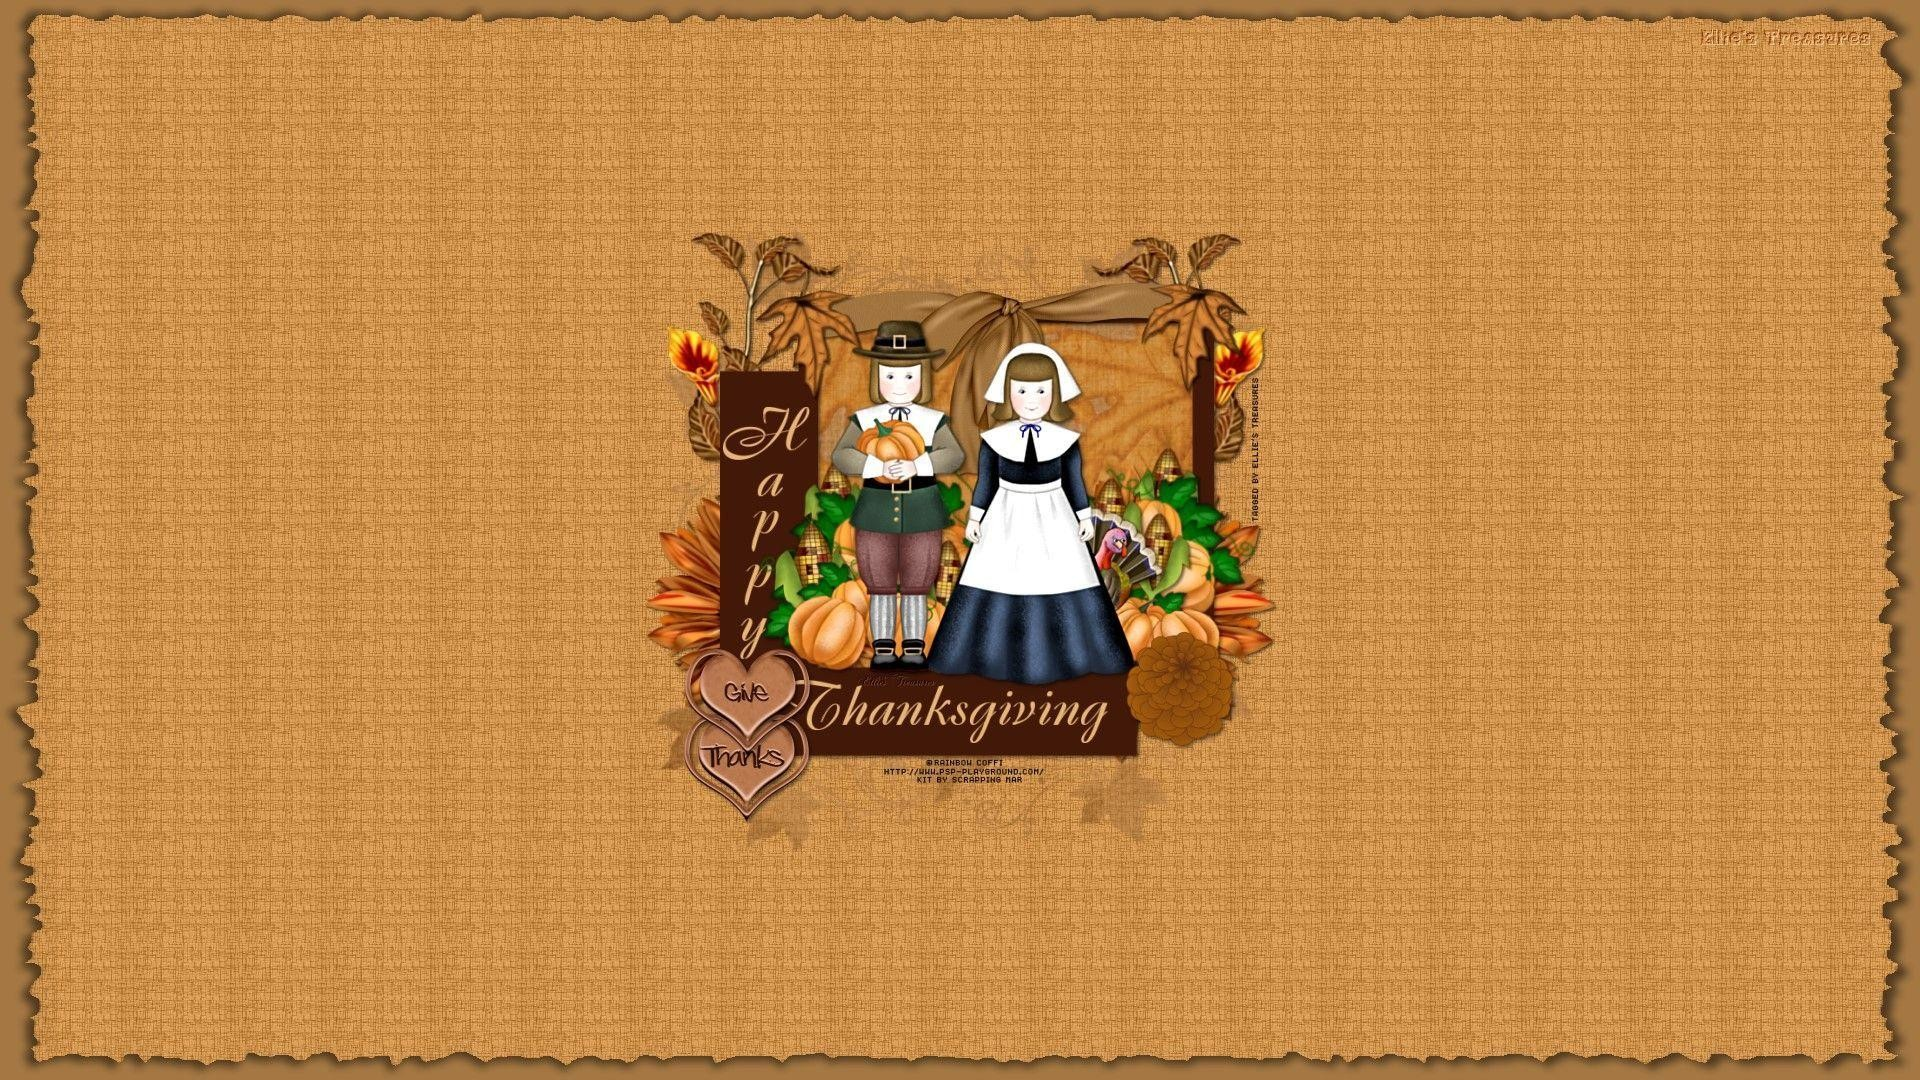 Res: 1920x1080, Cute Thanksgiving Wallpaper Backgrounds HD